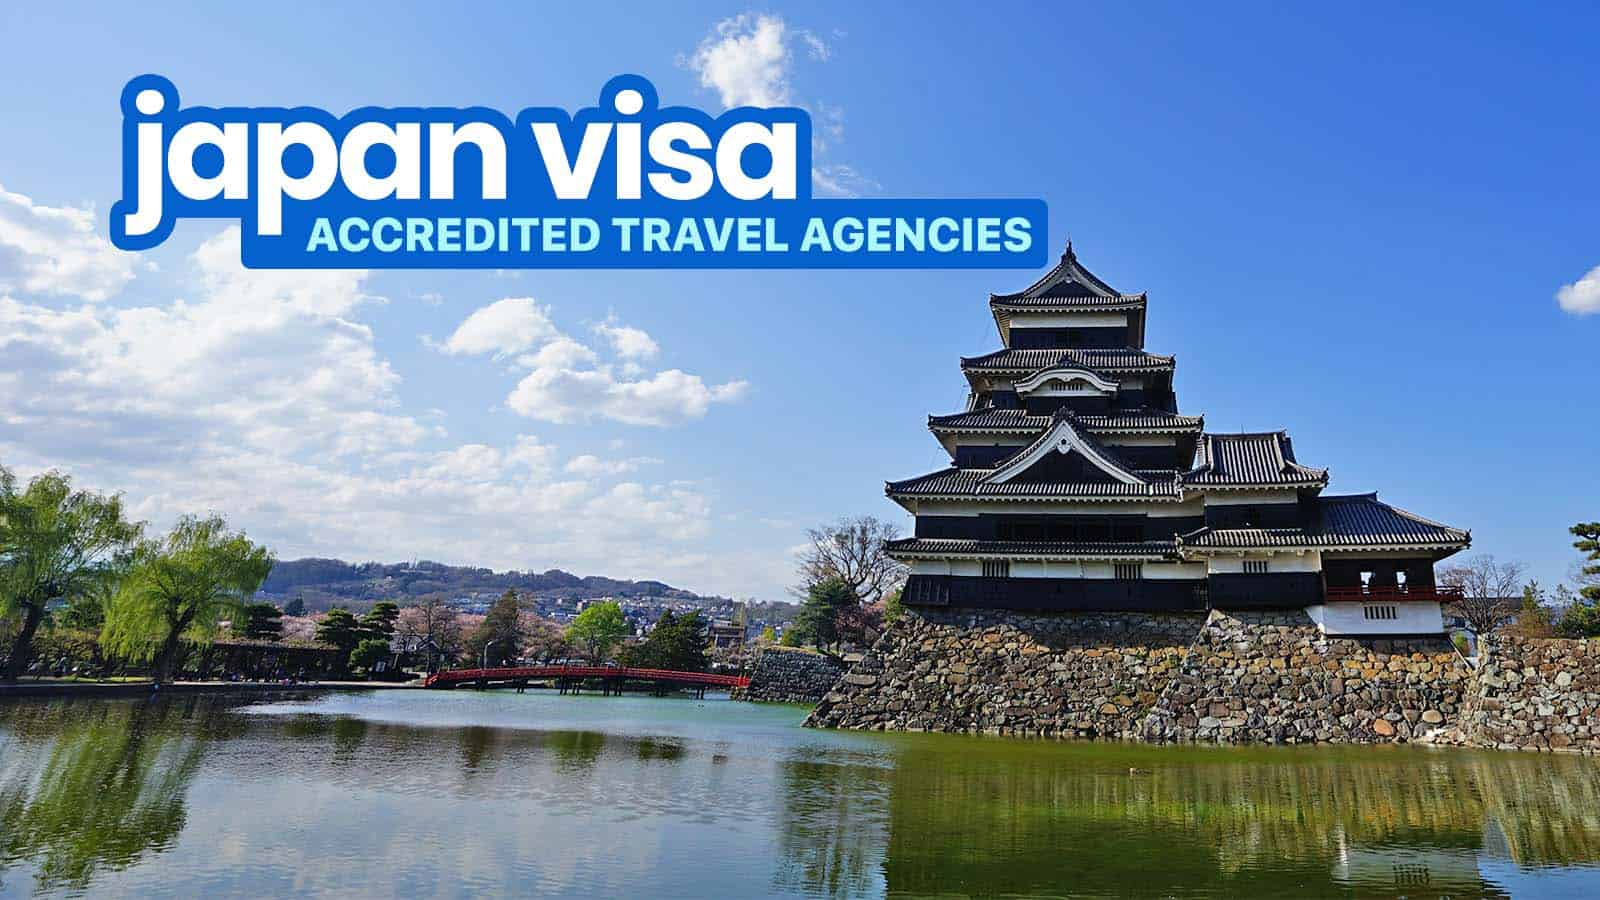 JAPAN VISA: LIST OF TRAVEL AGENCIES Accredited by the